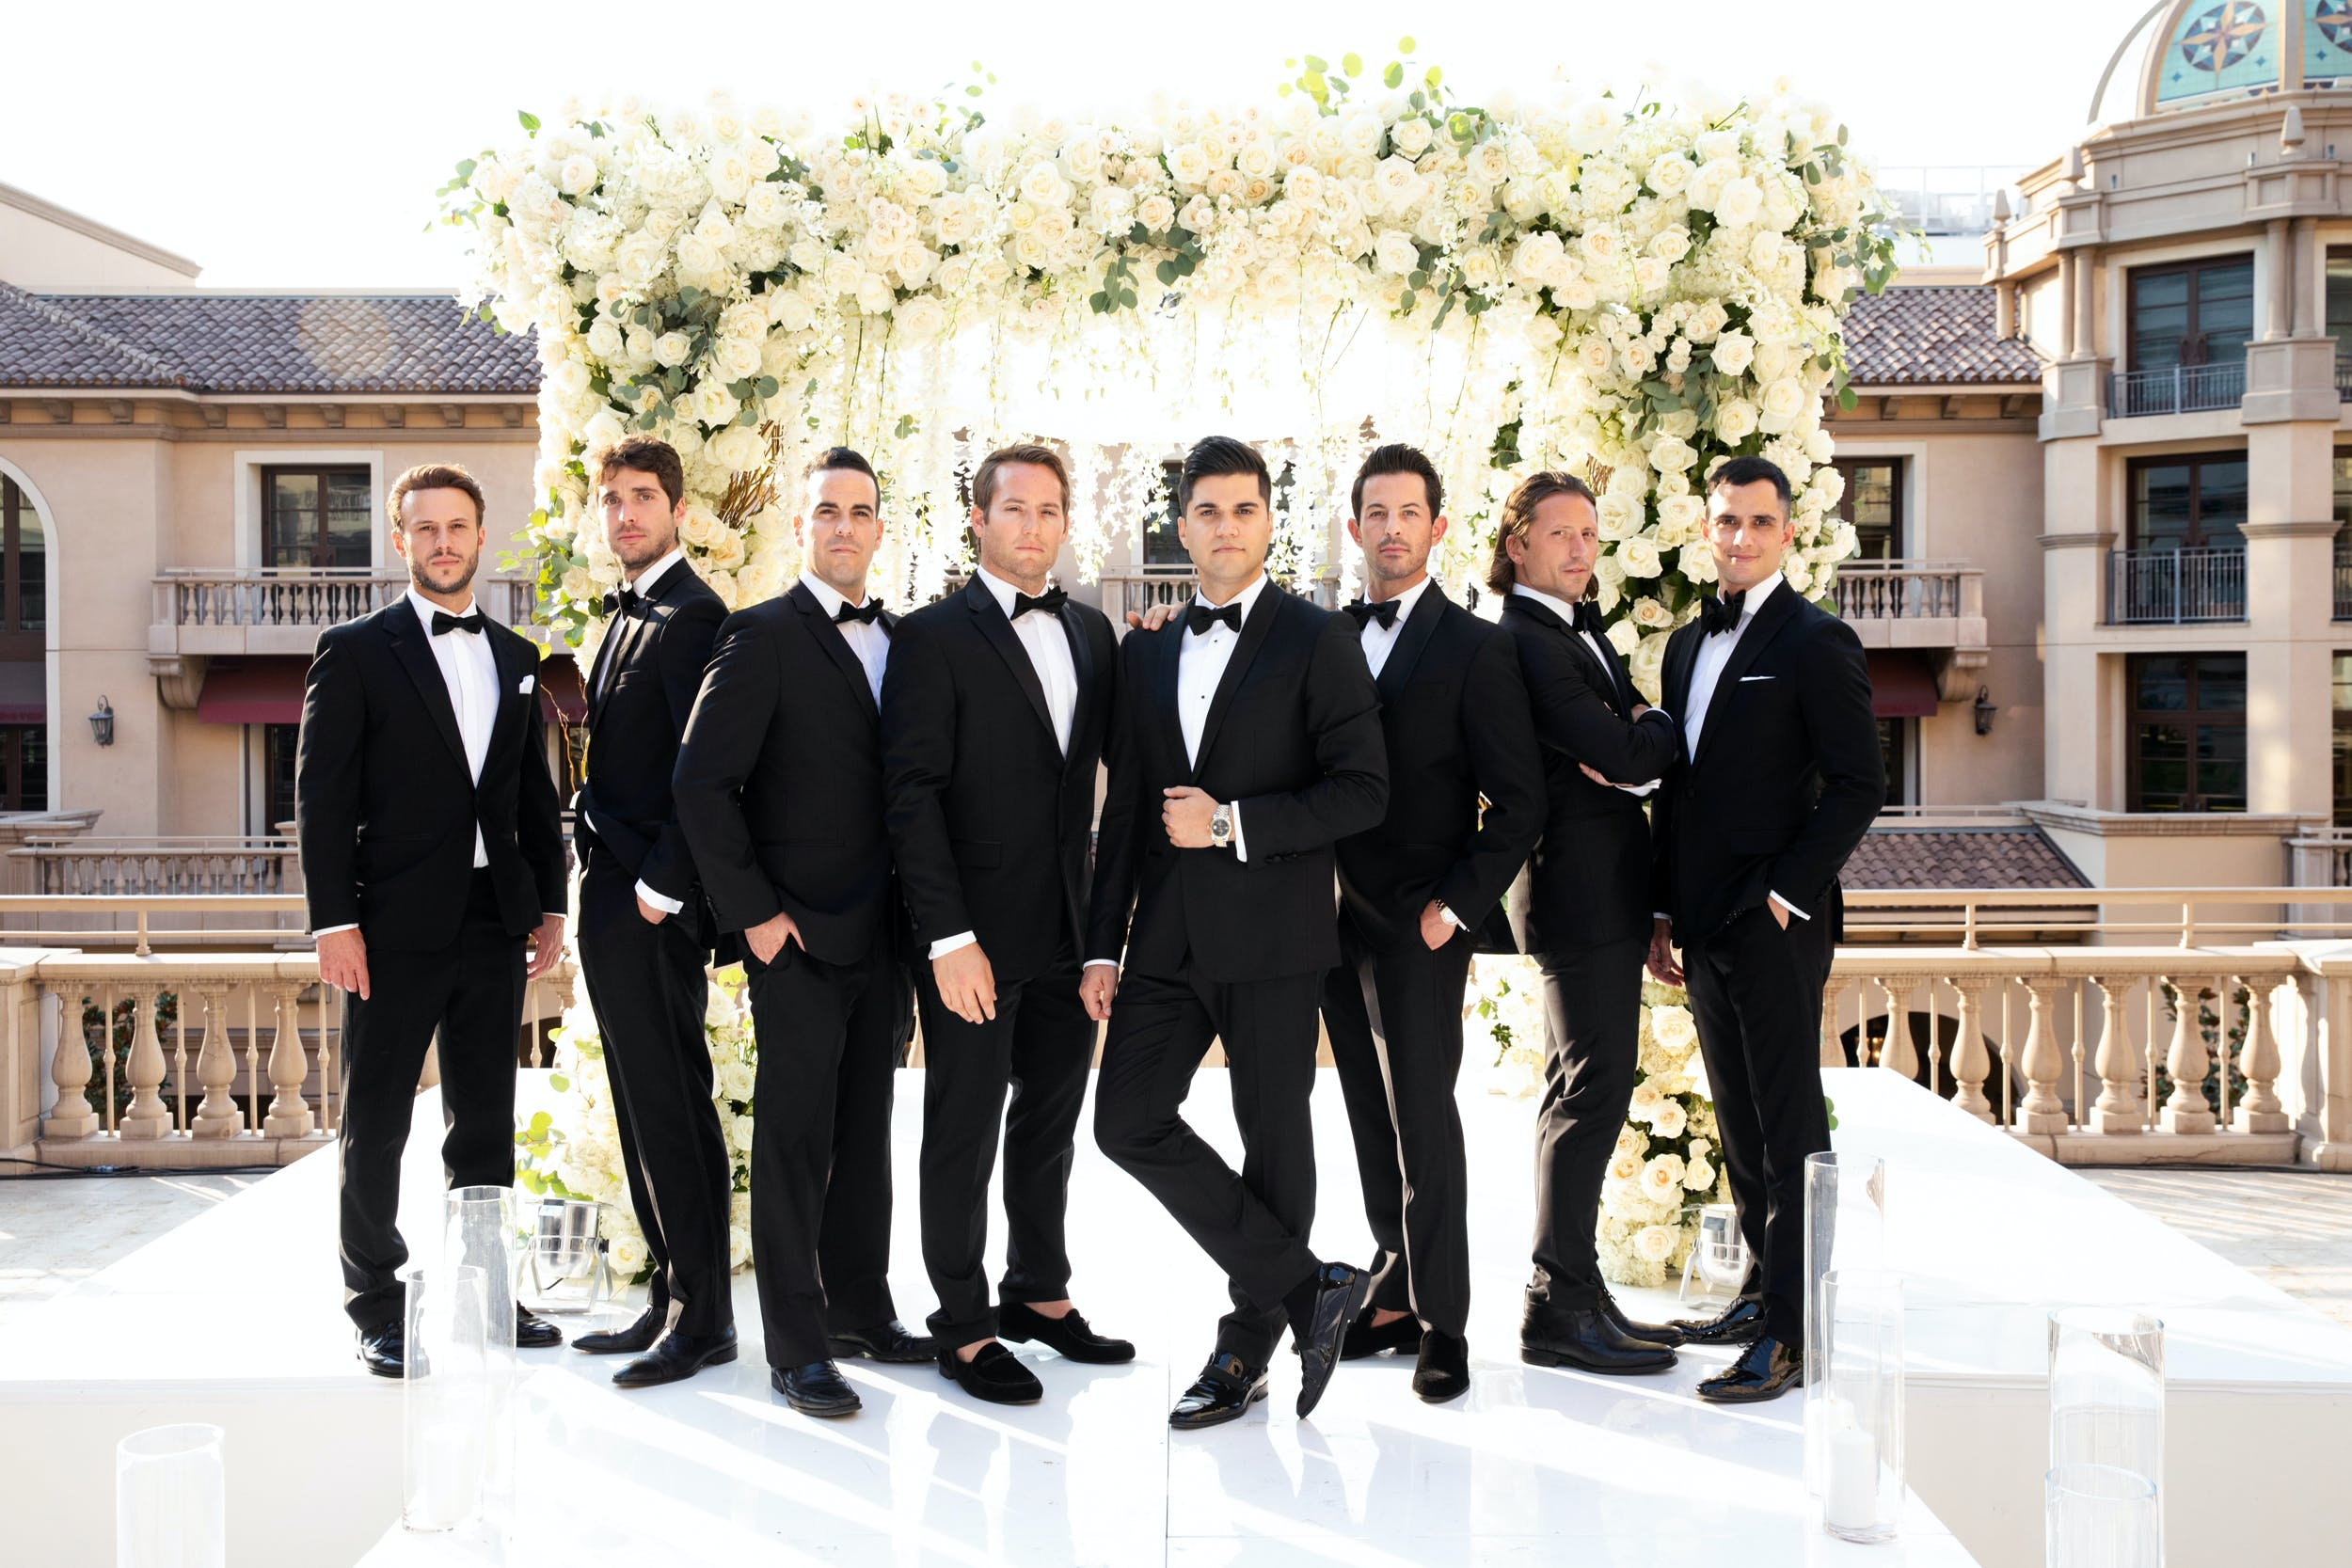 8 groomsmen in black tuxedos striking a pose in front of wedding arch   PartySlate